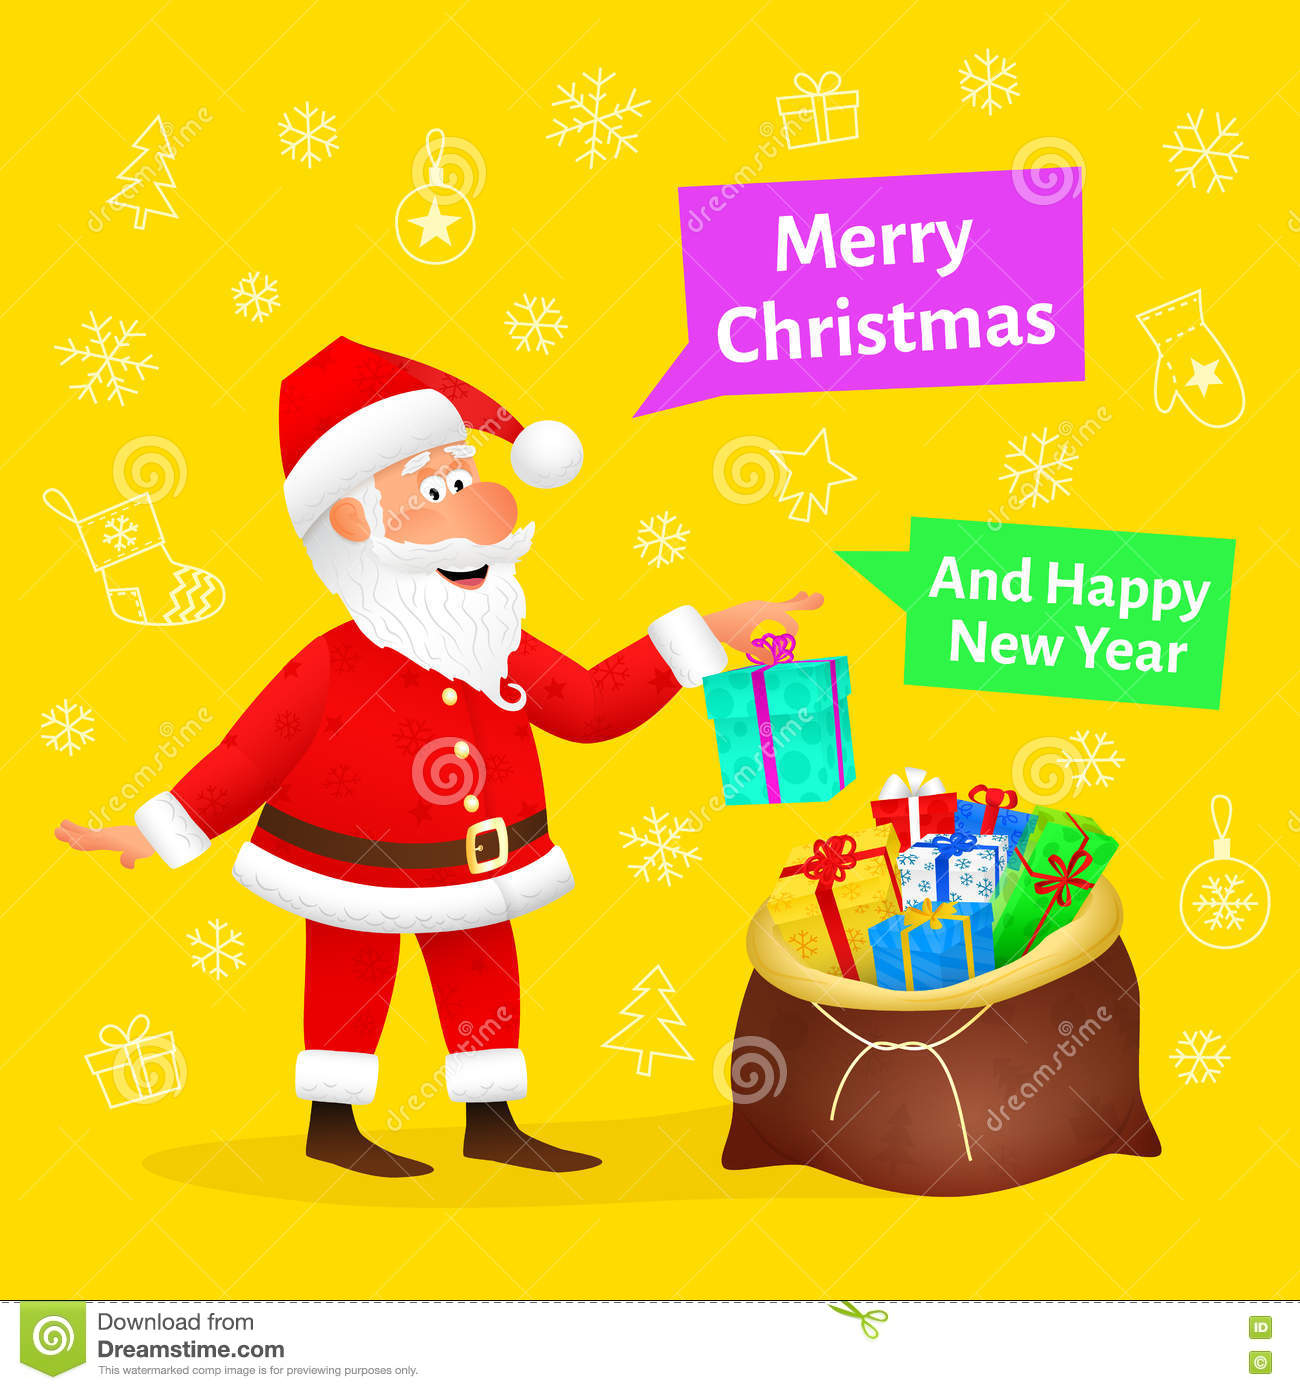 merry christmas card flat funny old man character holding xmas gift on christmas background